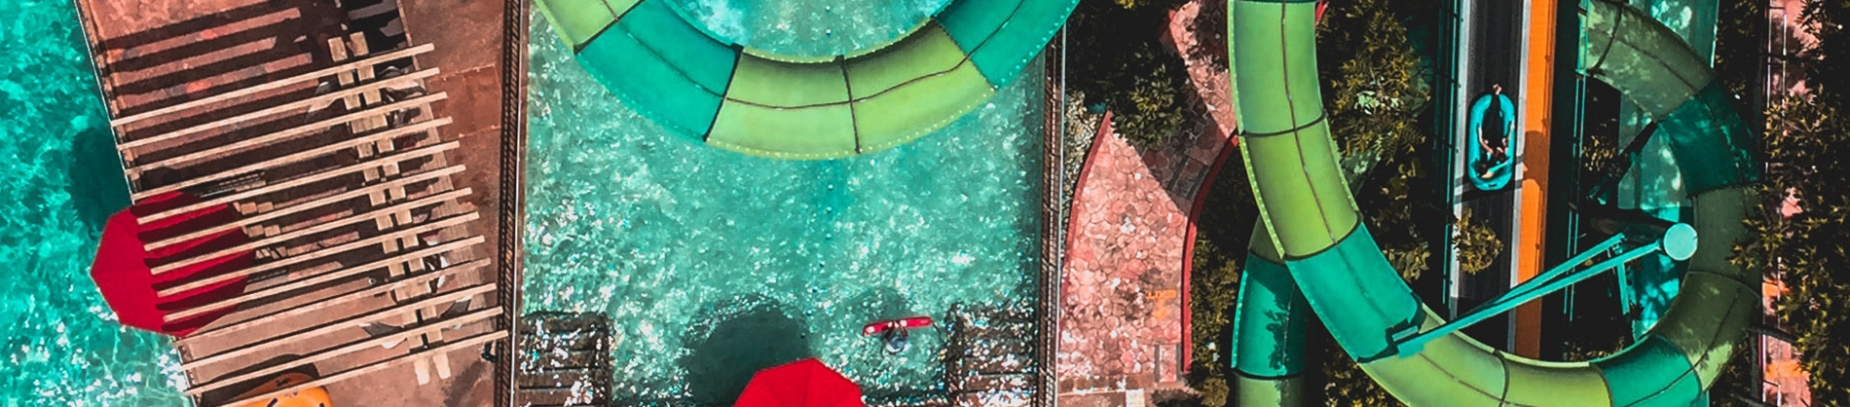 A birds-eye view of a water park with a green flume ride